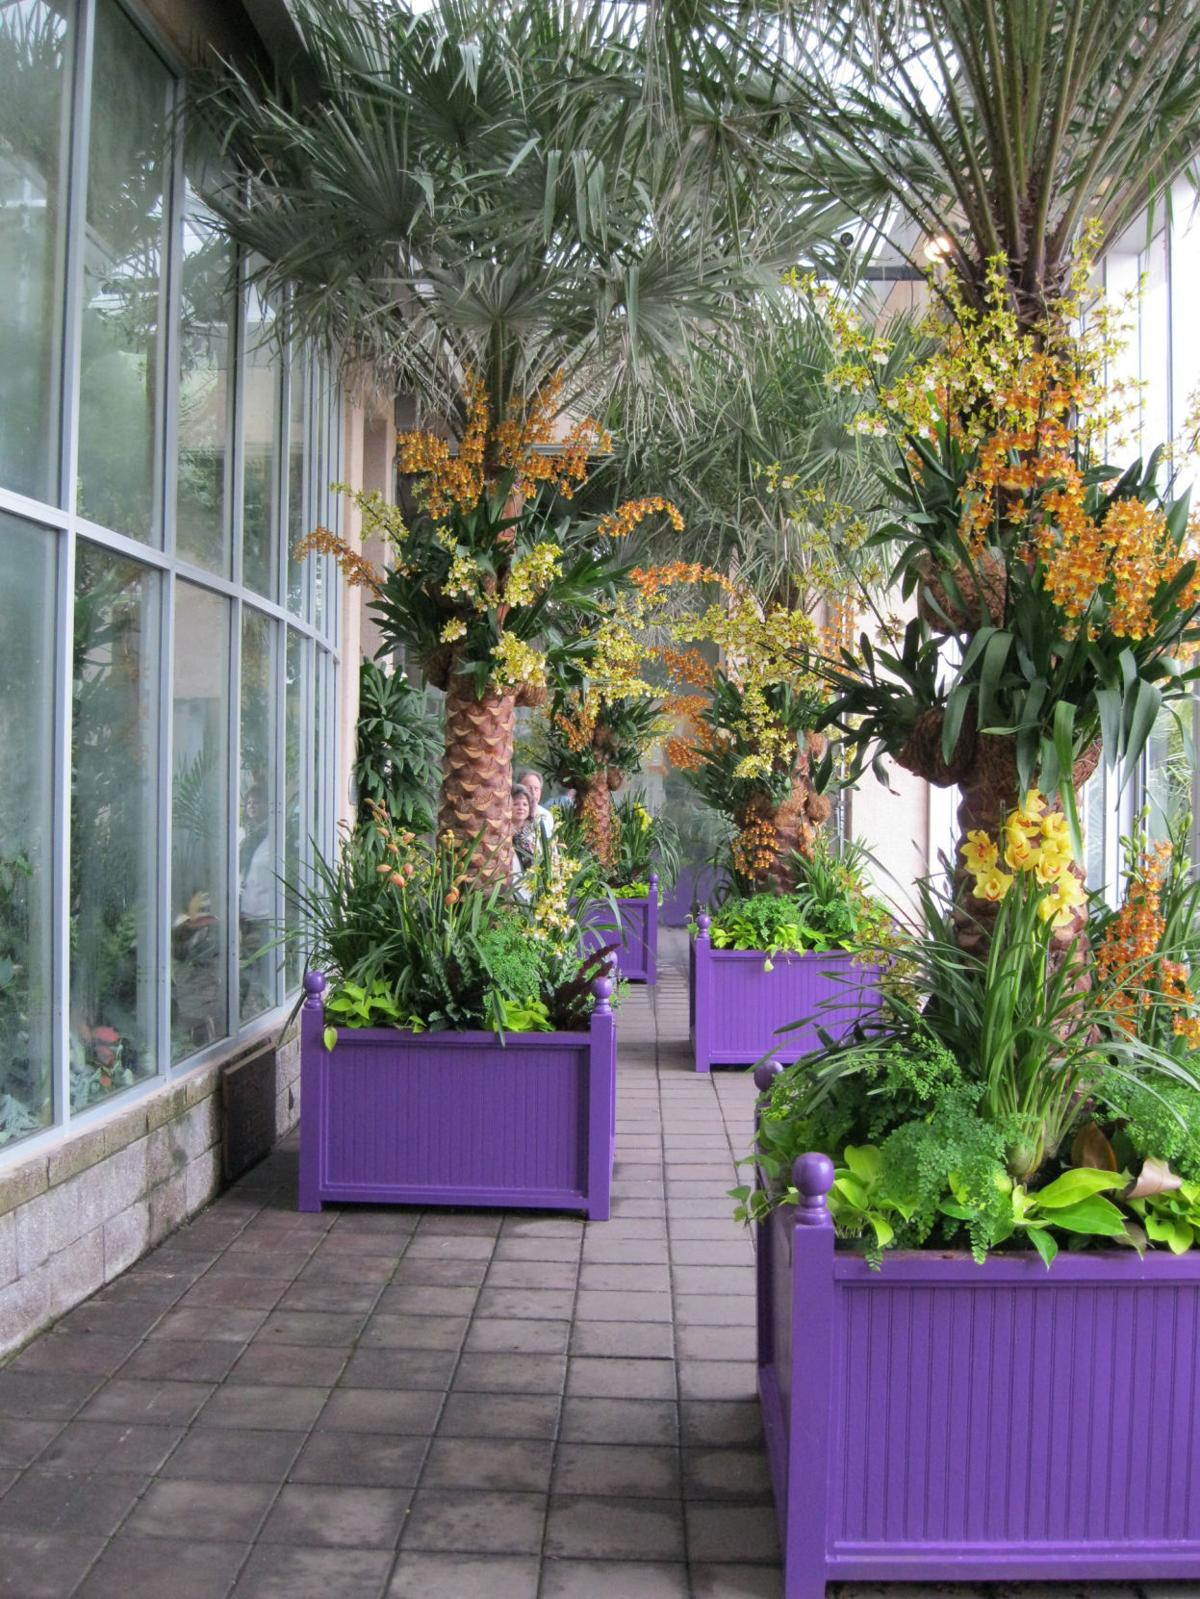 Atlanta Botanical Garden Putting On Yearly Orchid Display Garden